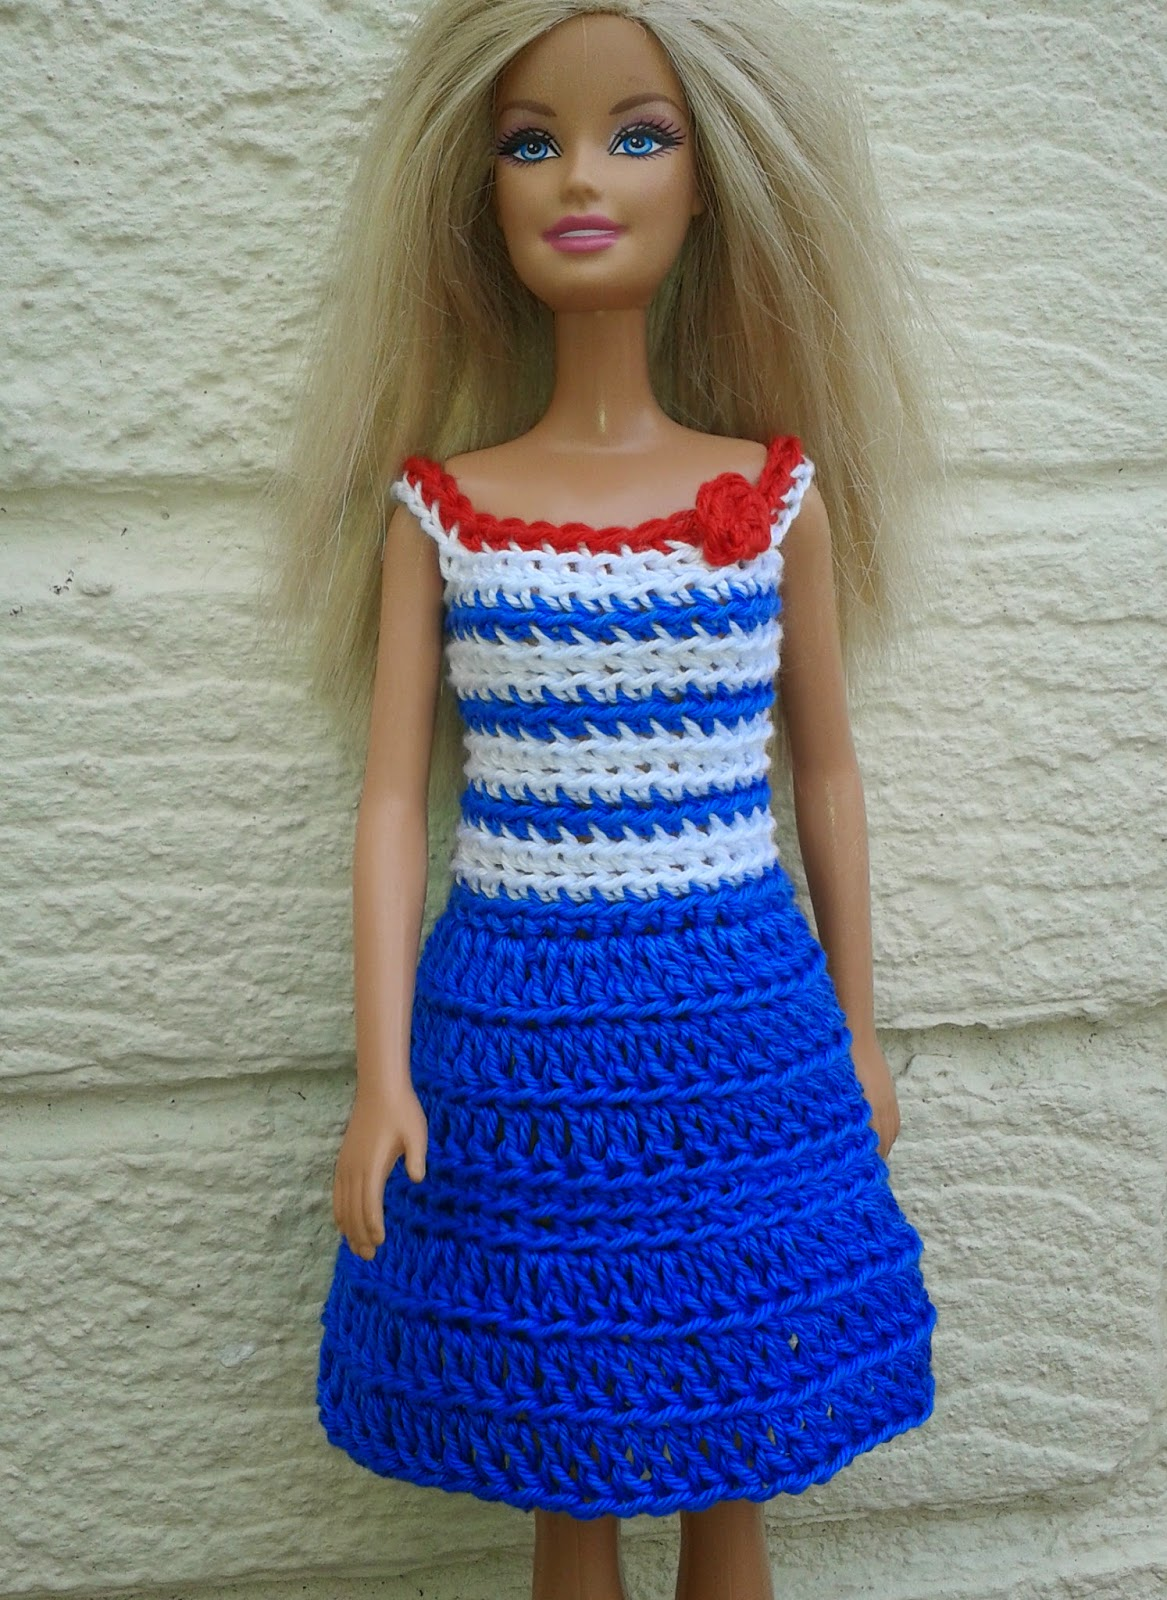 Crochet Barbie : Barbie Crochet Nautical Dress